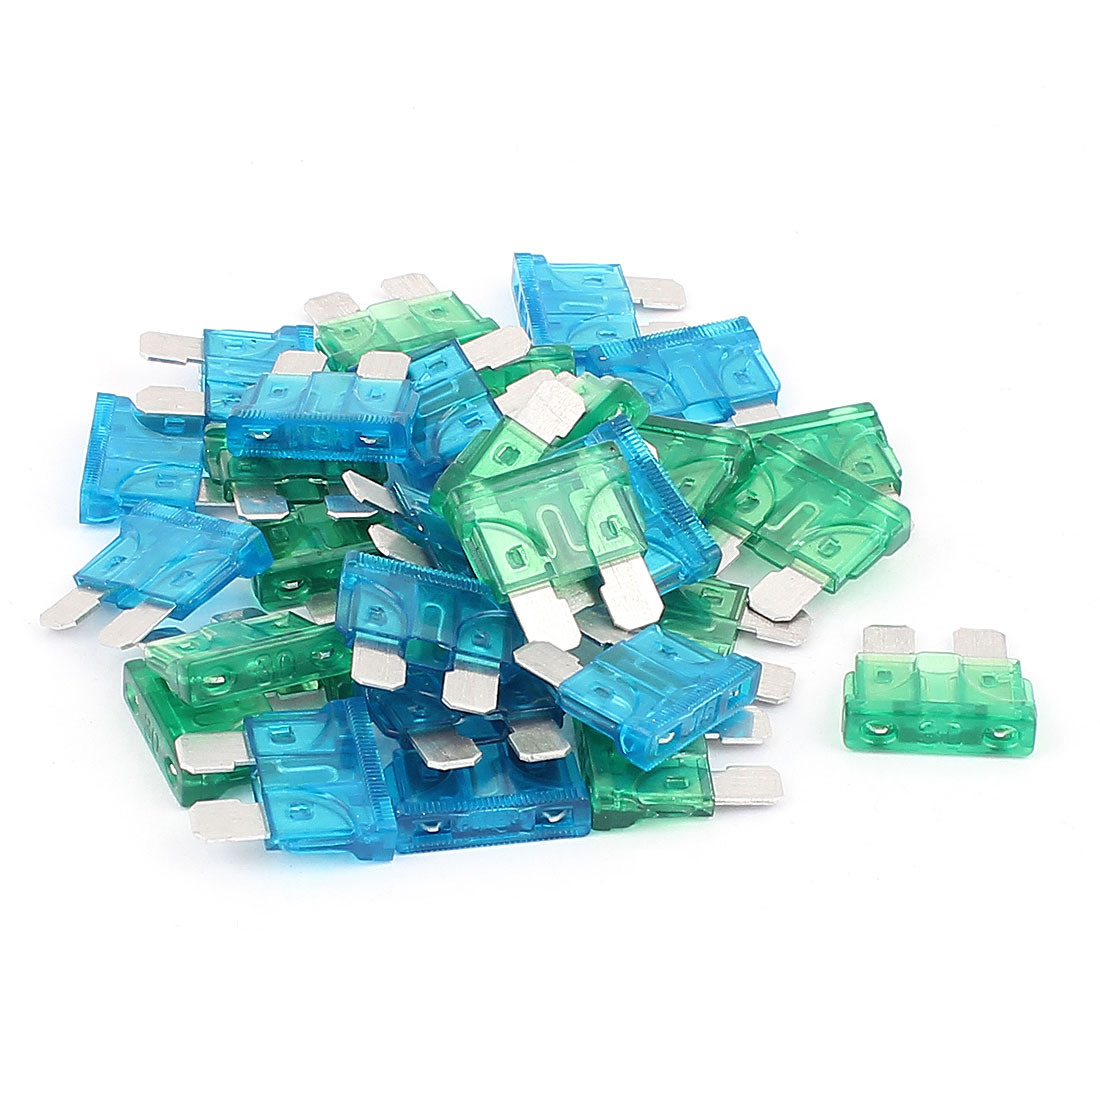 online get cheap water fuse box aliexpress com alibaba group Water In Fuse Box x autohaux 30pcs blue green 15a 30a atc ato mini blade fuse for car caravan vehicle water in fuse box